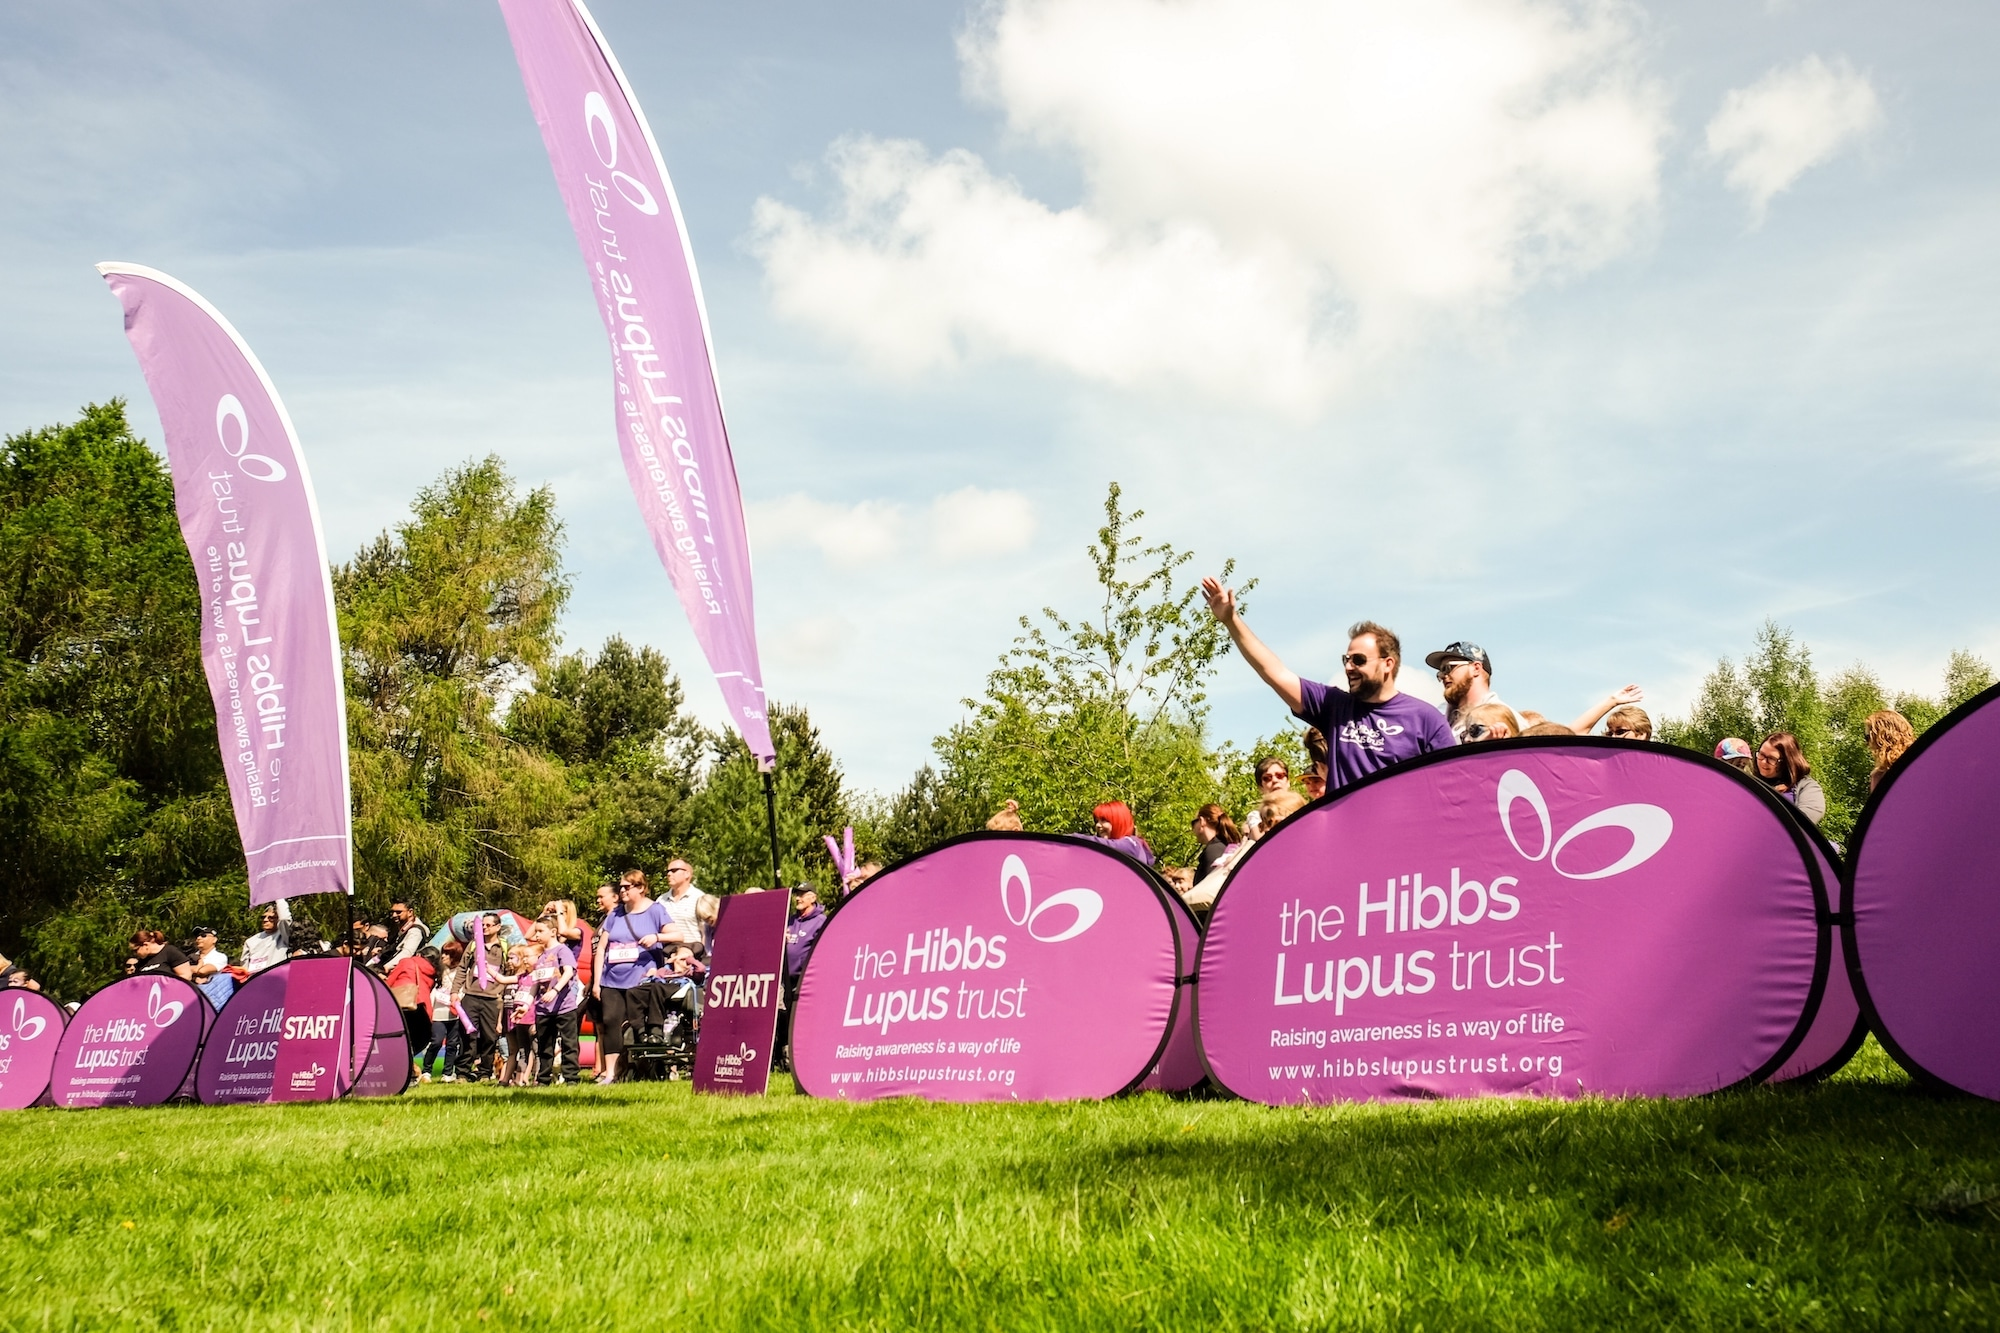 The Hibbs Lupus Trust